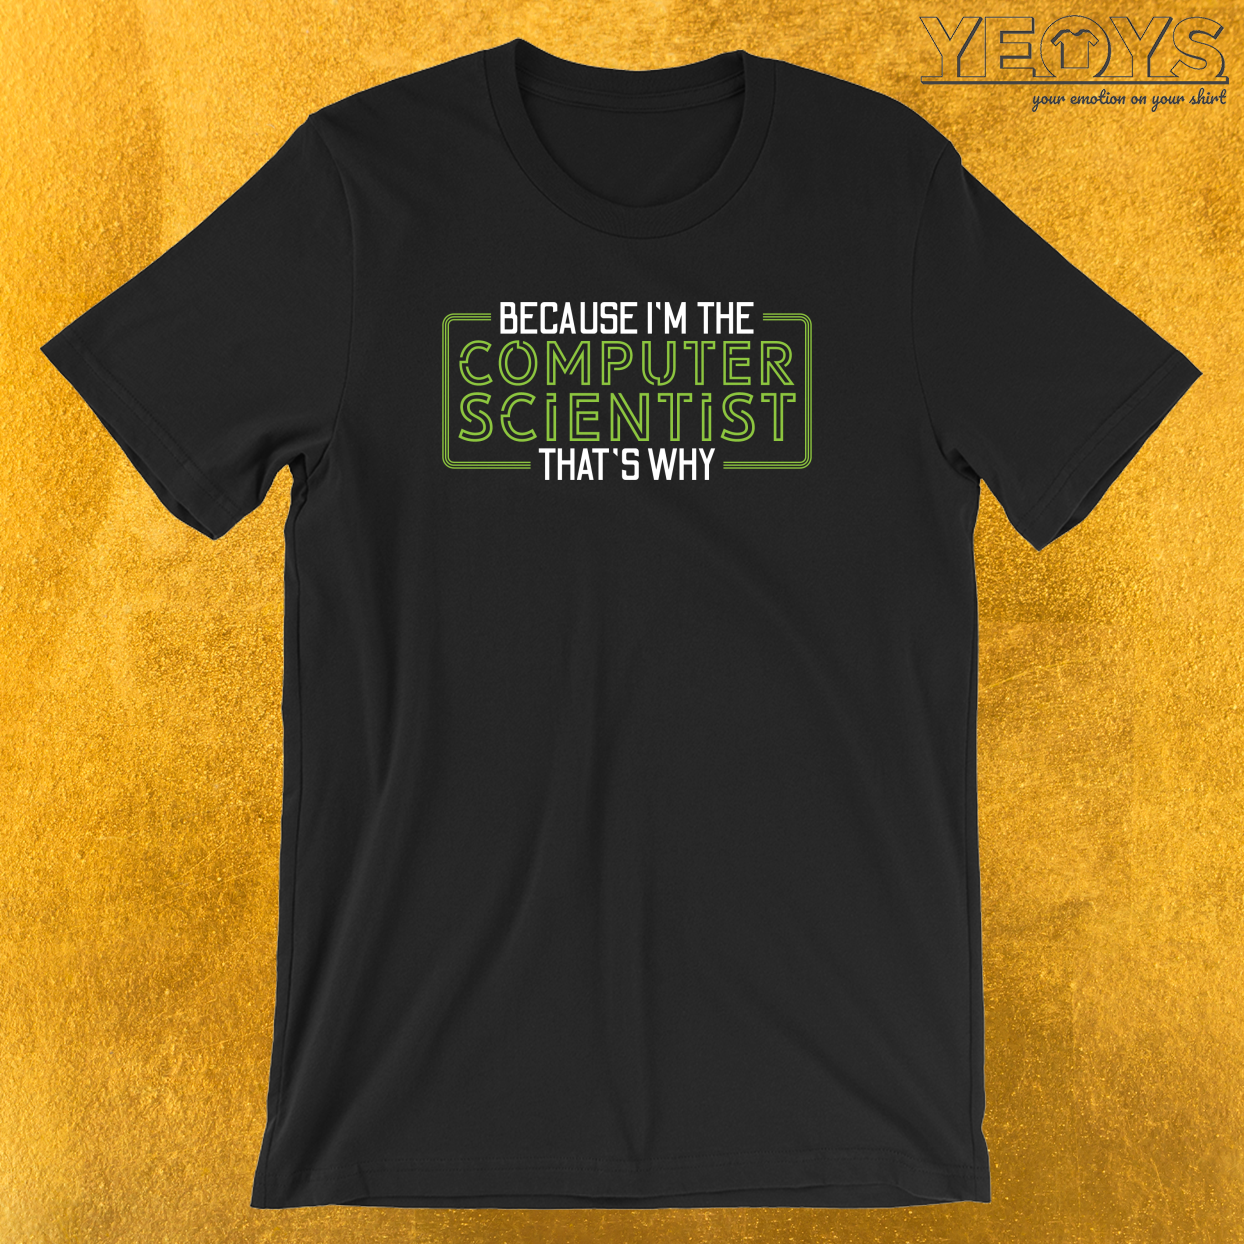 Because I'm The Computer Scientist That's Why T-Shirt